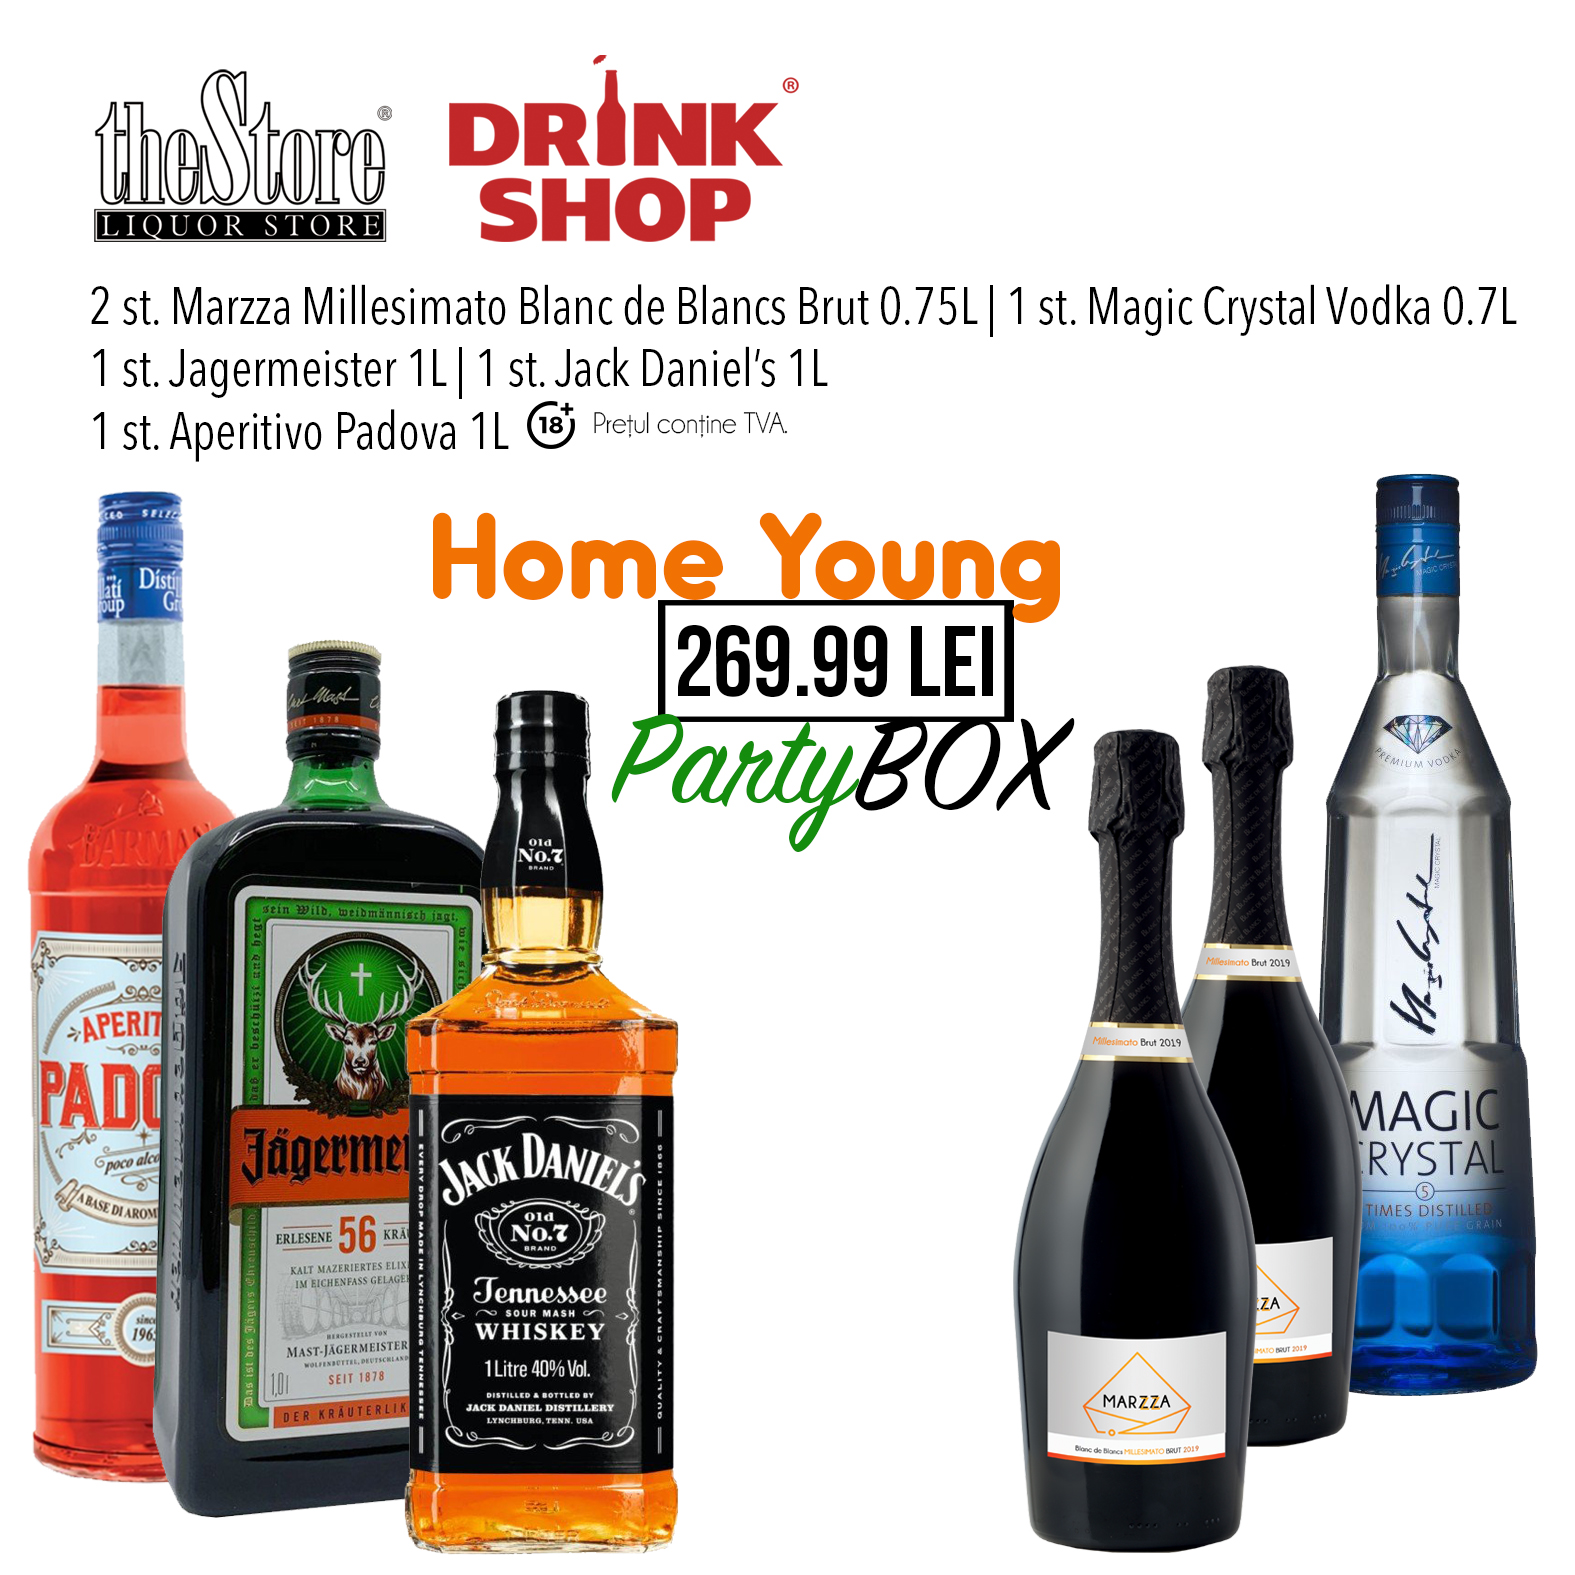 Home Young Party Box